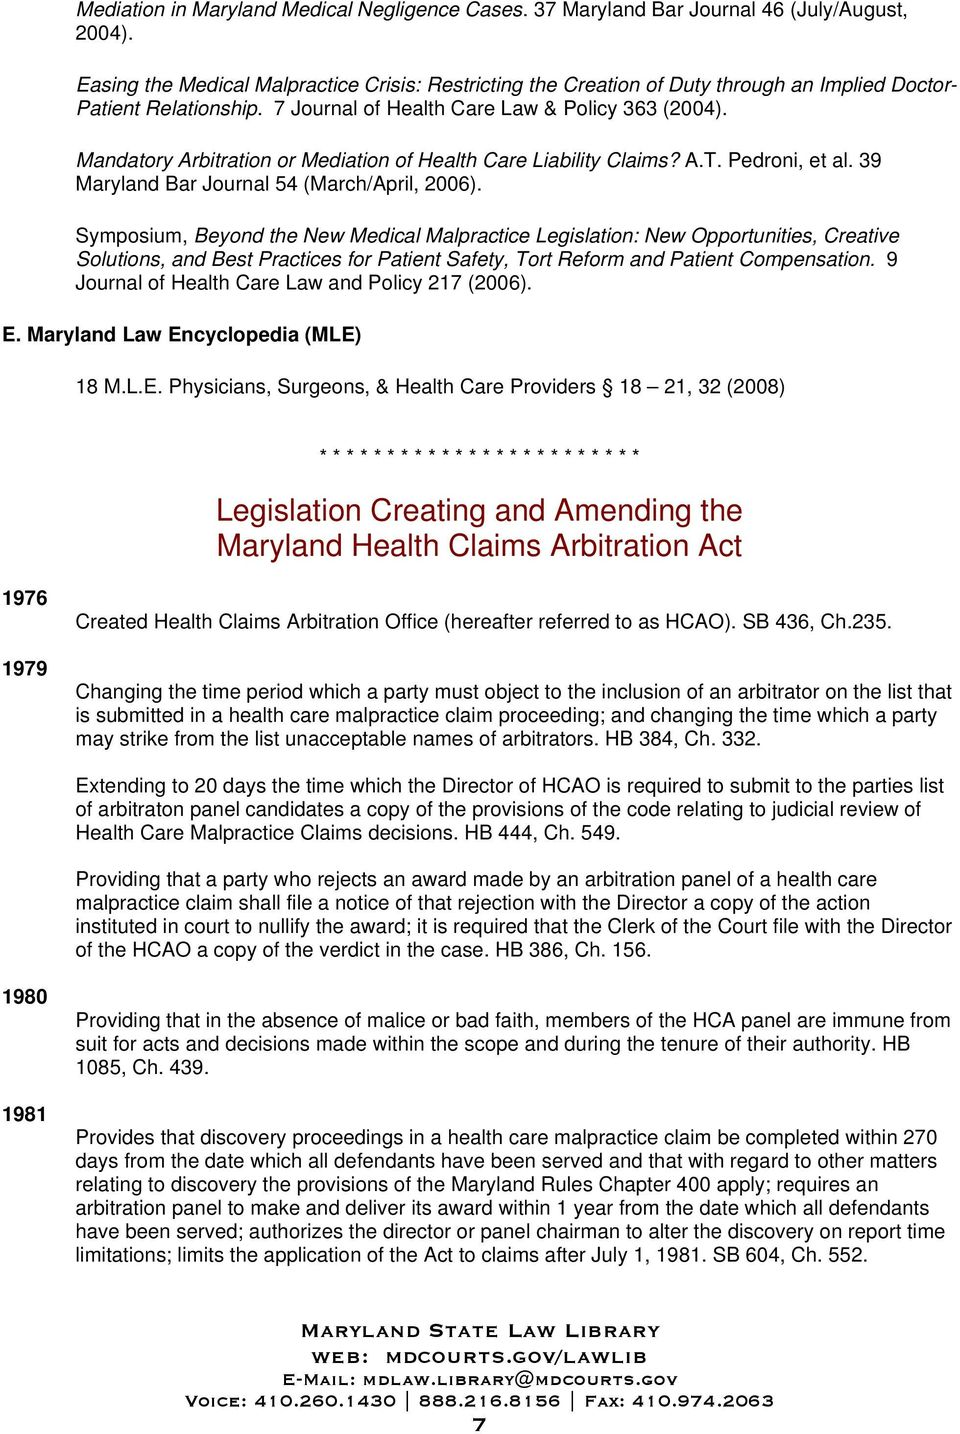 Mandatory Arbitration or Mediation of Health Care Liability Claims? A.T. Pedroni, et al. 39 Maryland Bar Journal 54 (March/April, 2006).